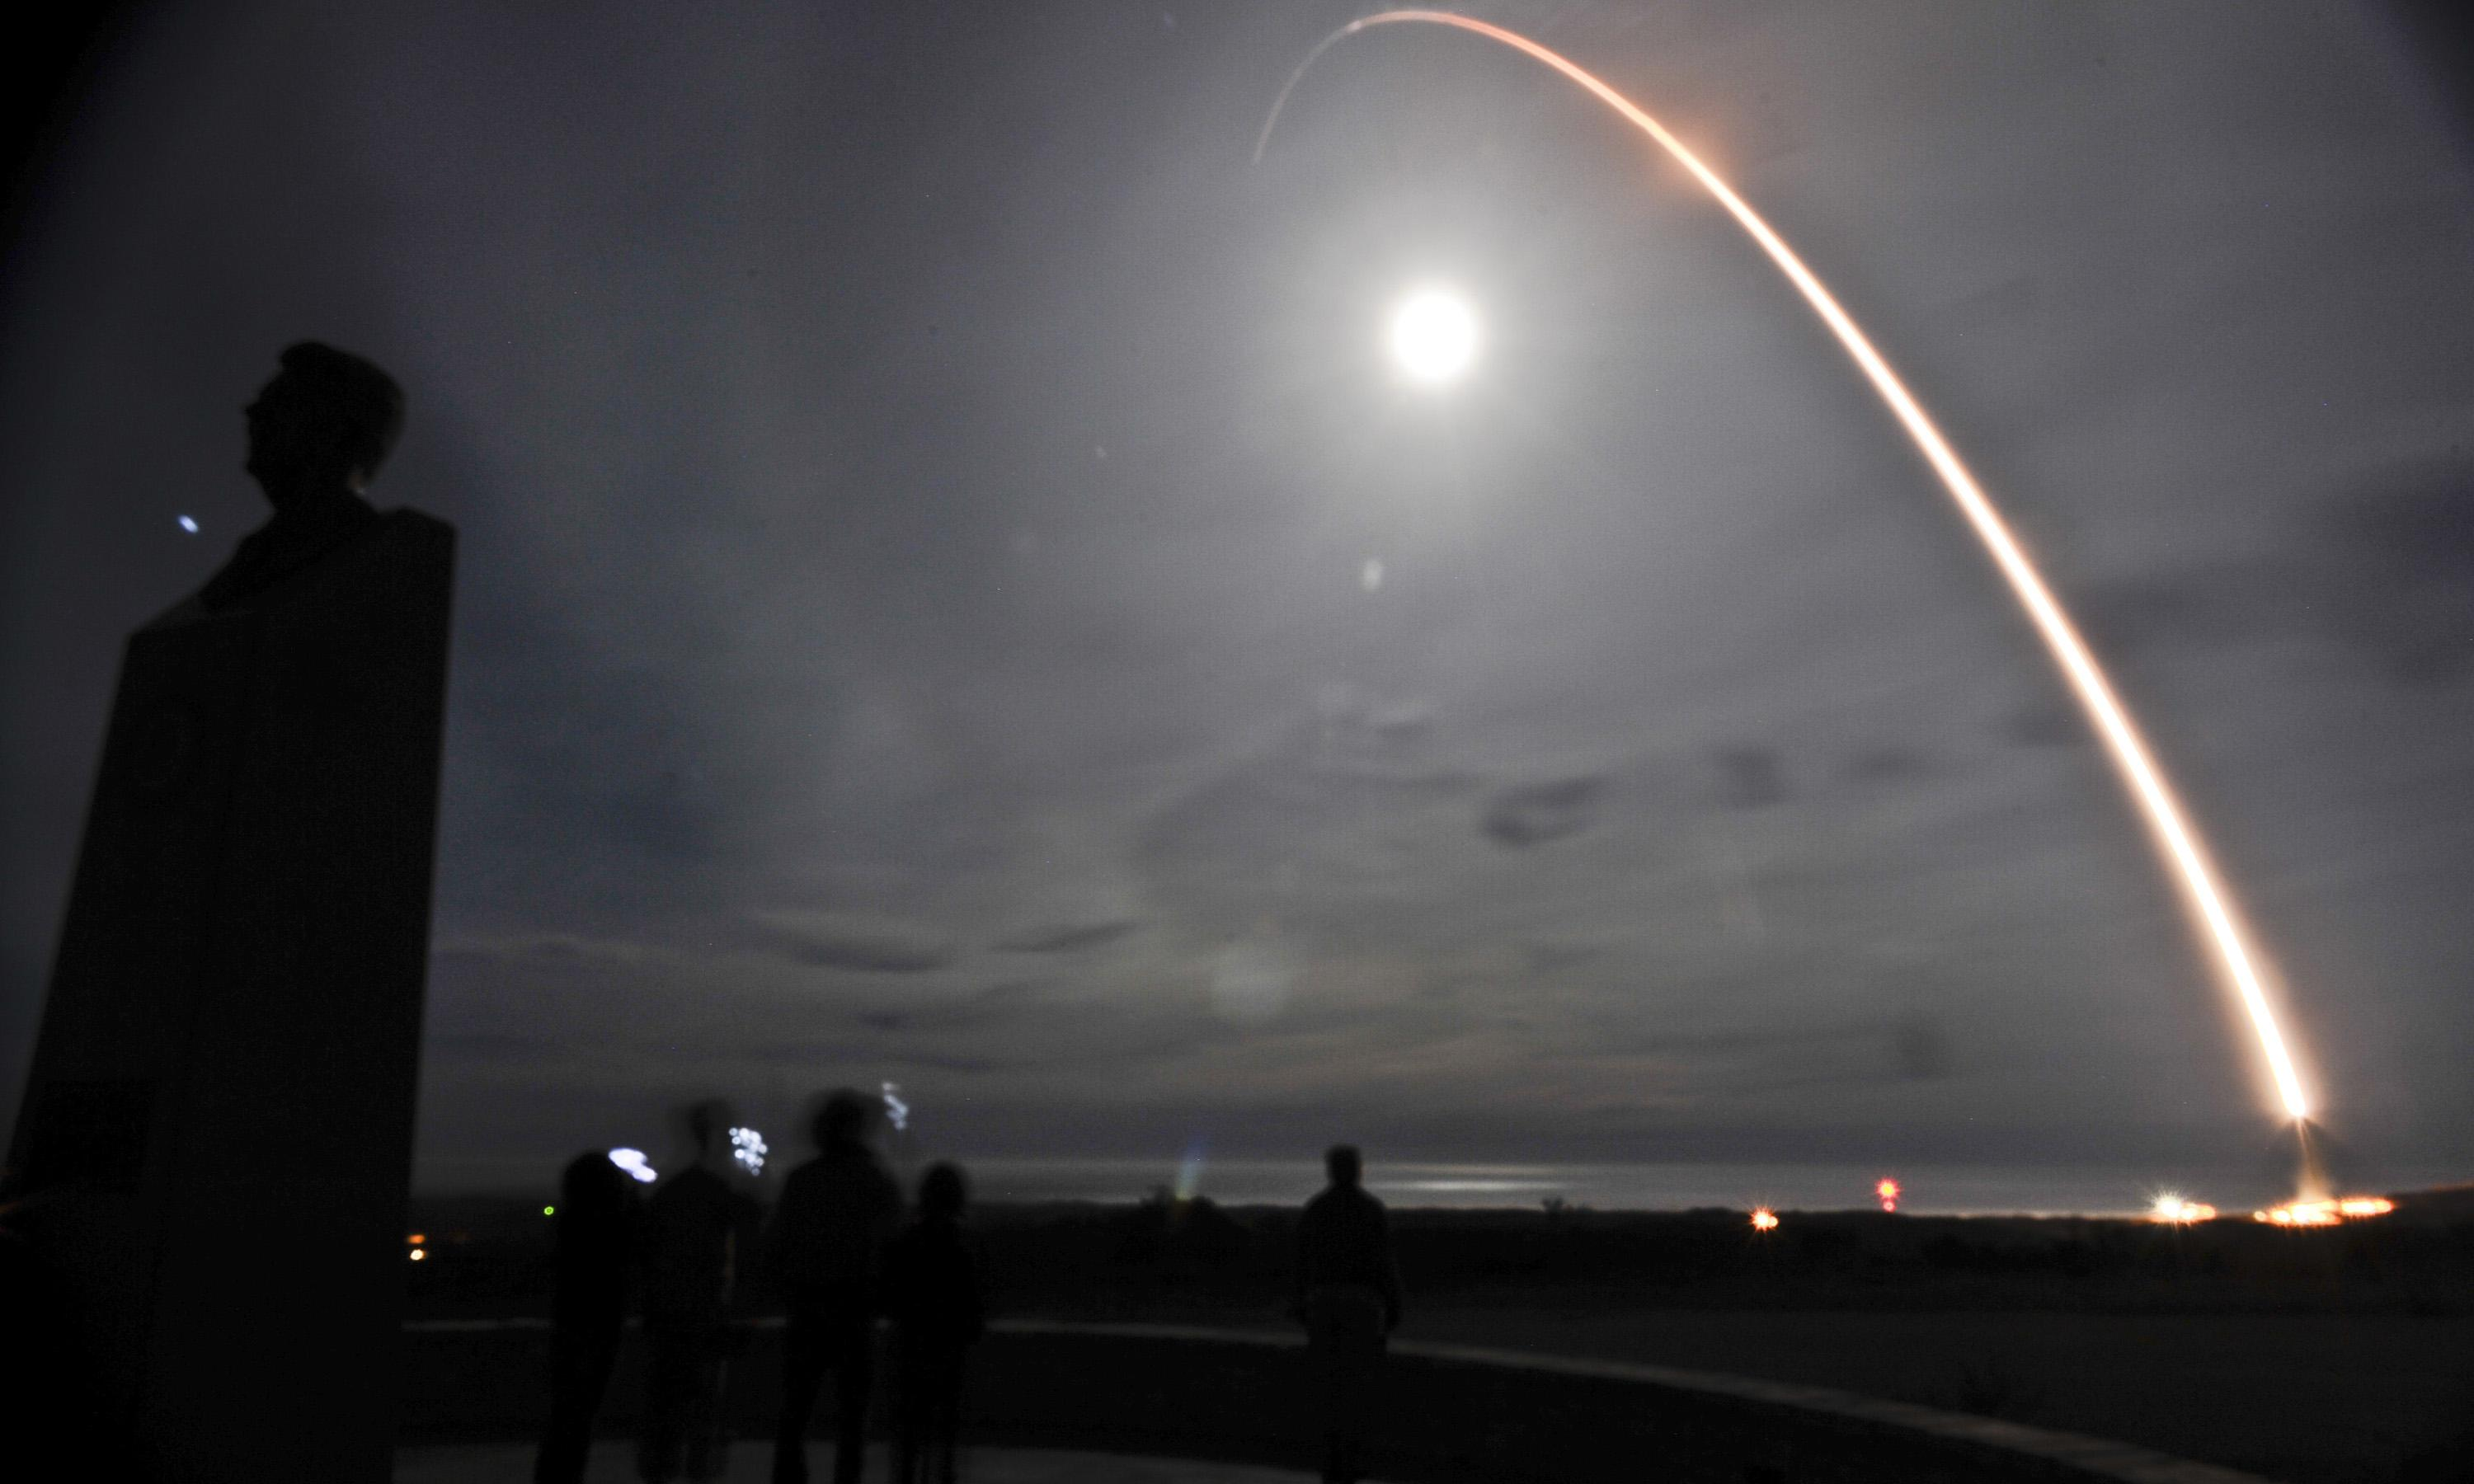 A missile being launched at night